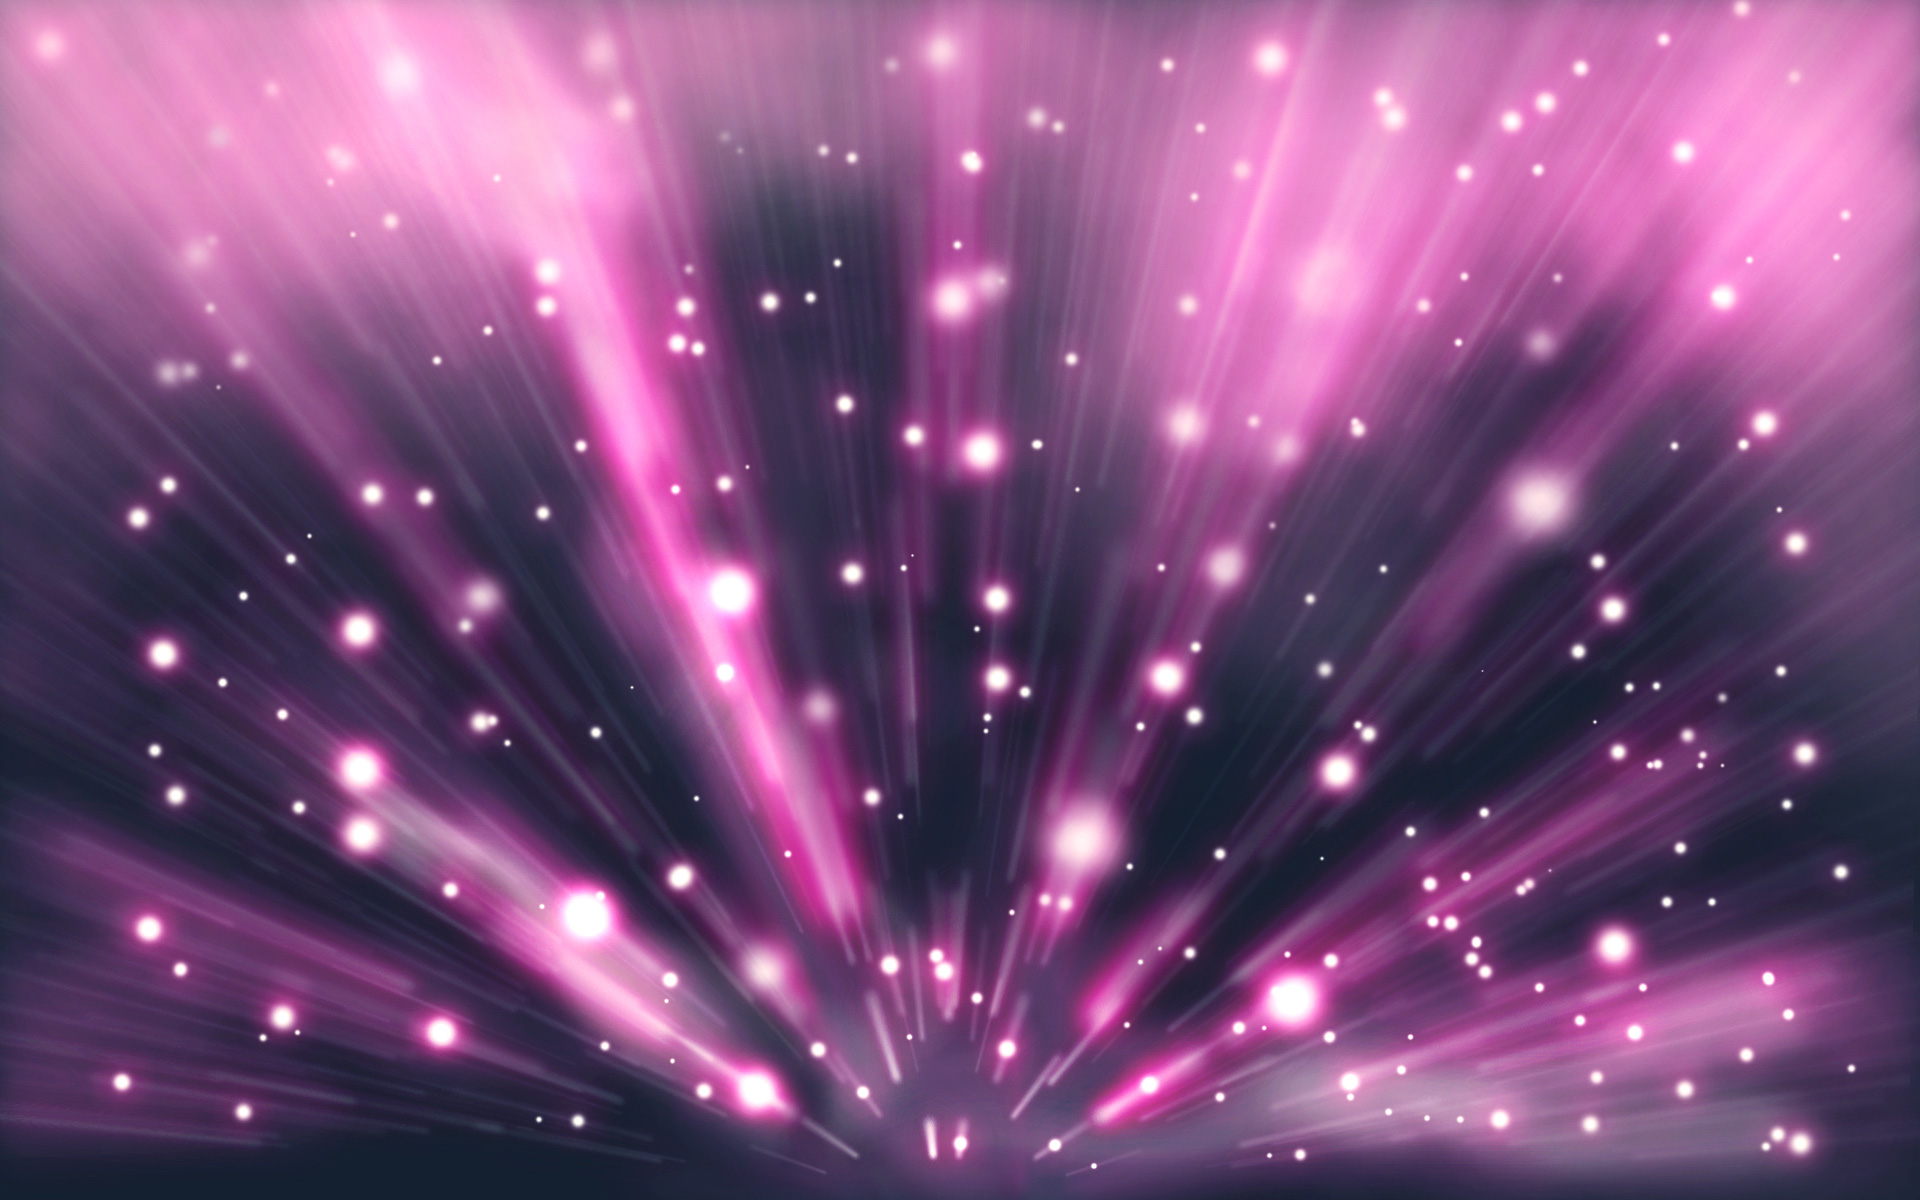 to create Abstract Wormhole Background in Photoshop CS5 Photoshop 1920x1200